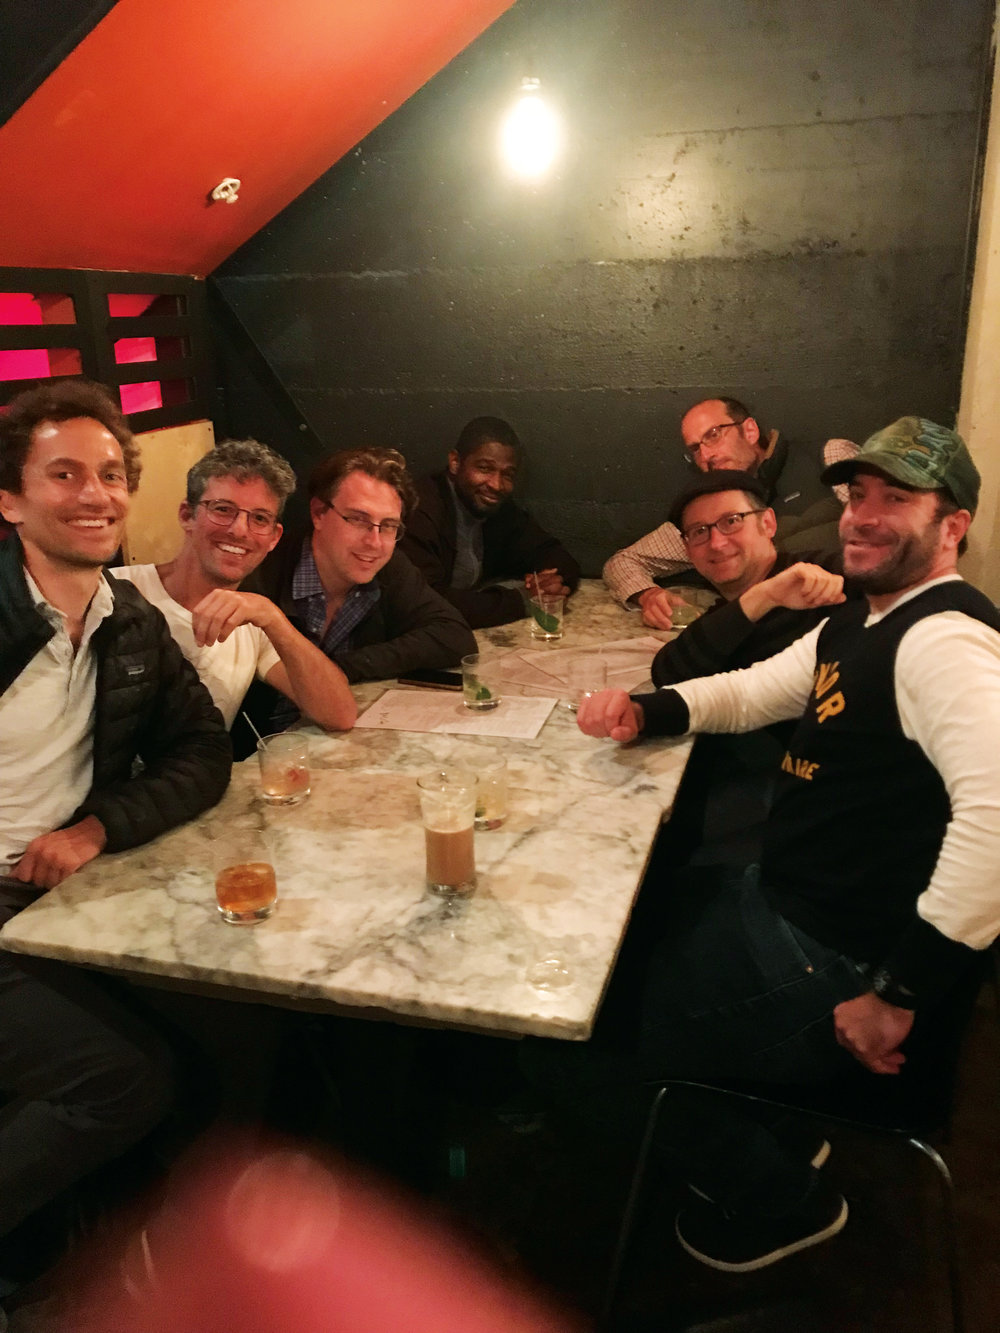 (L. to r.) Alexey Salamini '95, Adam Simons '95, Gordy Rogers '95, Dahni-El Giles '95, Charlie Koven '94, Mike Godwin '95 and Tim Wallack '94 in Oakland, Calif.